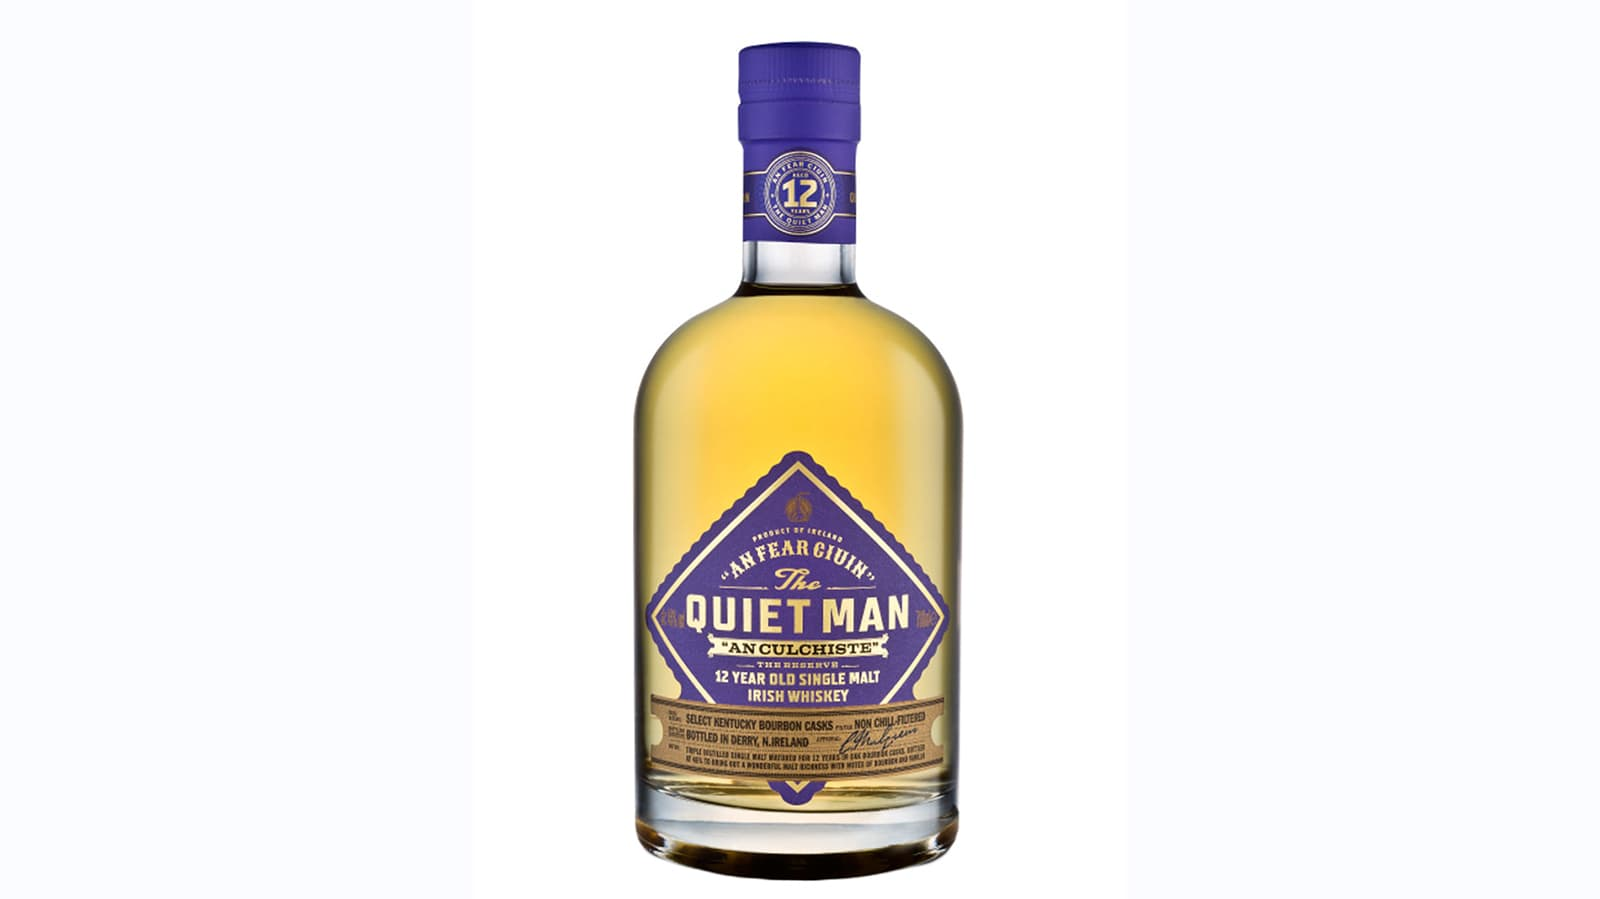 The Quiet Man 12 Years Old